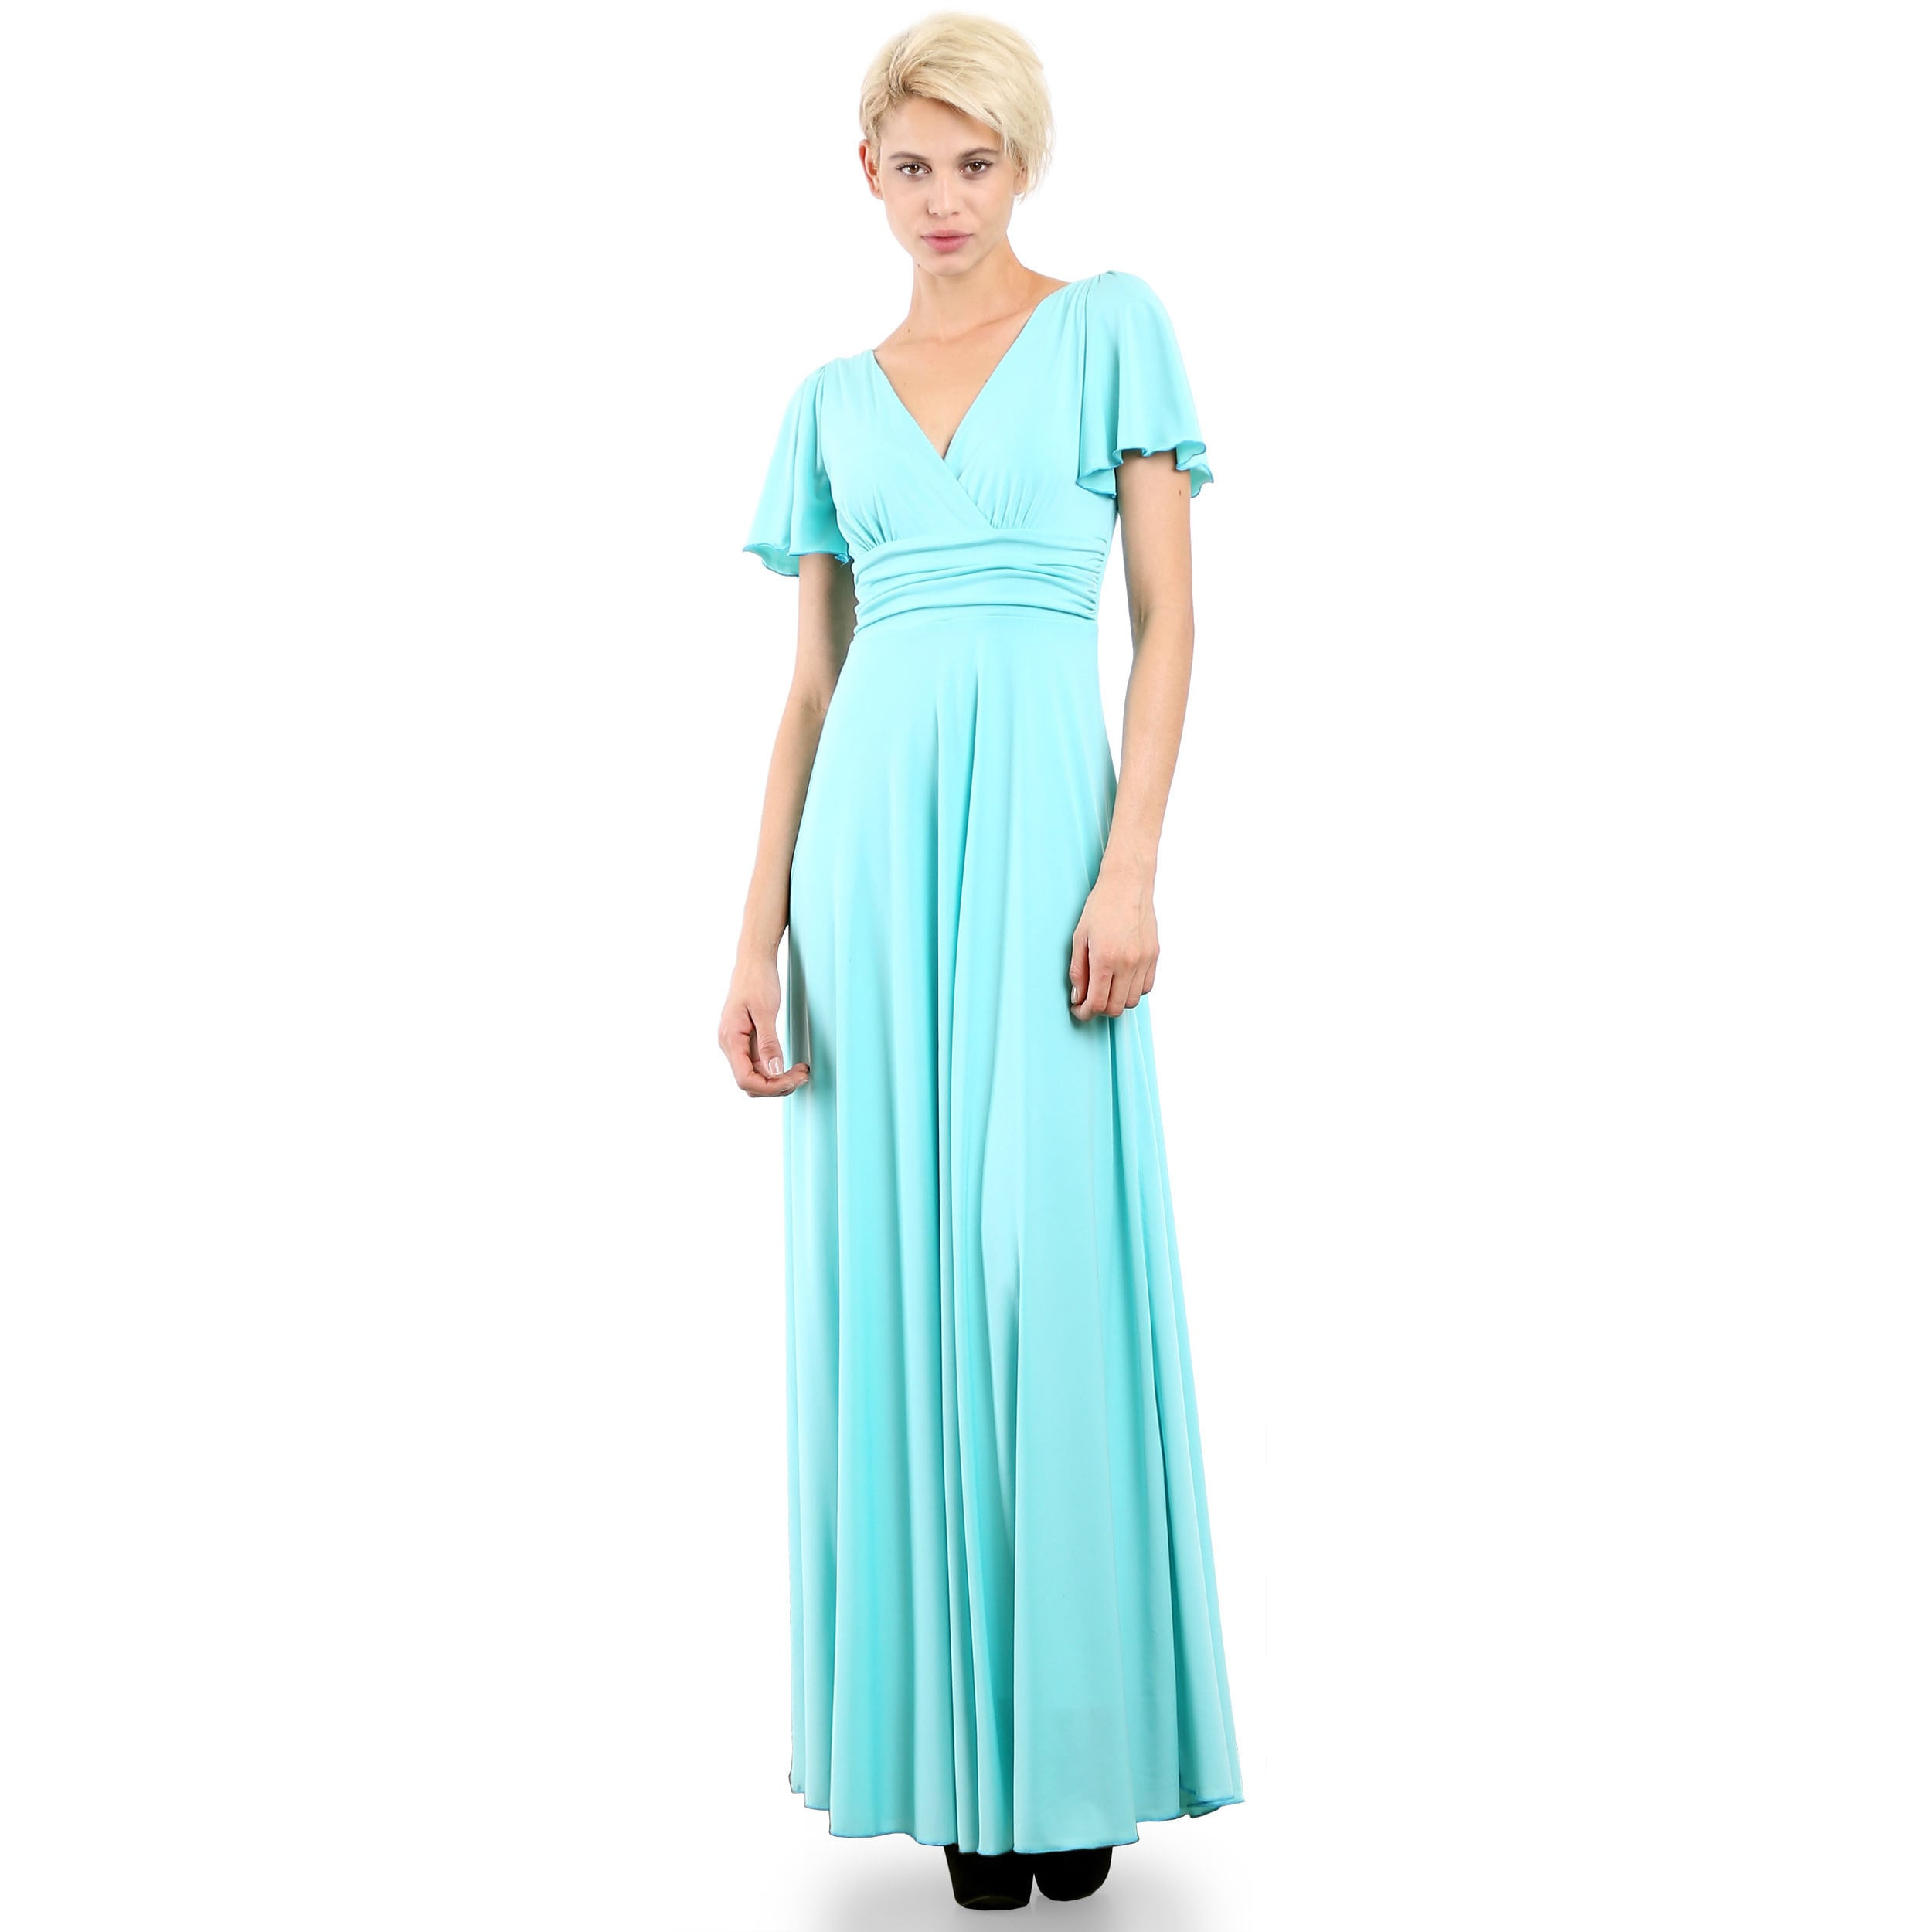 Evanese Women\'s Elegant Slip-on Long Formal Evening Party Dress with ...